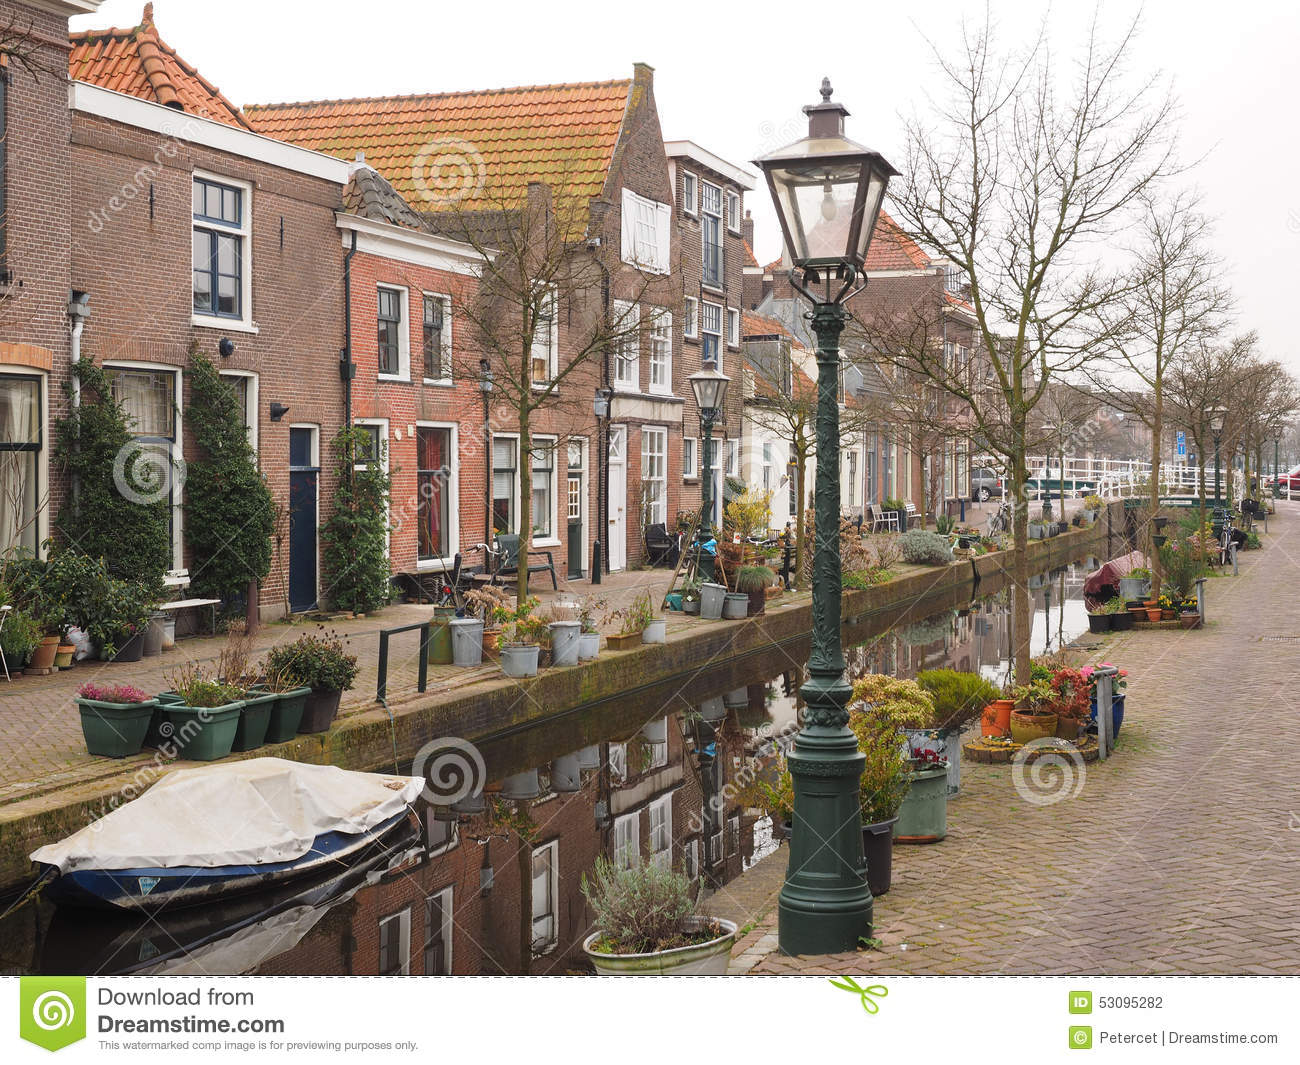 Small Tree Lined Canal Amidst Residential Housing In Holland.